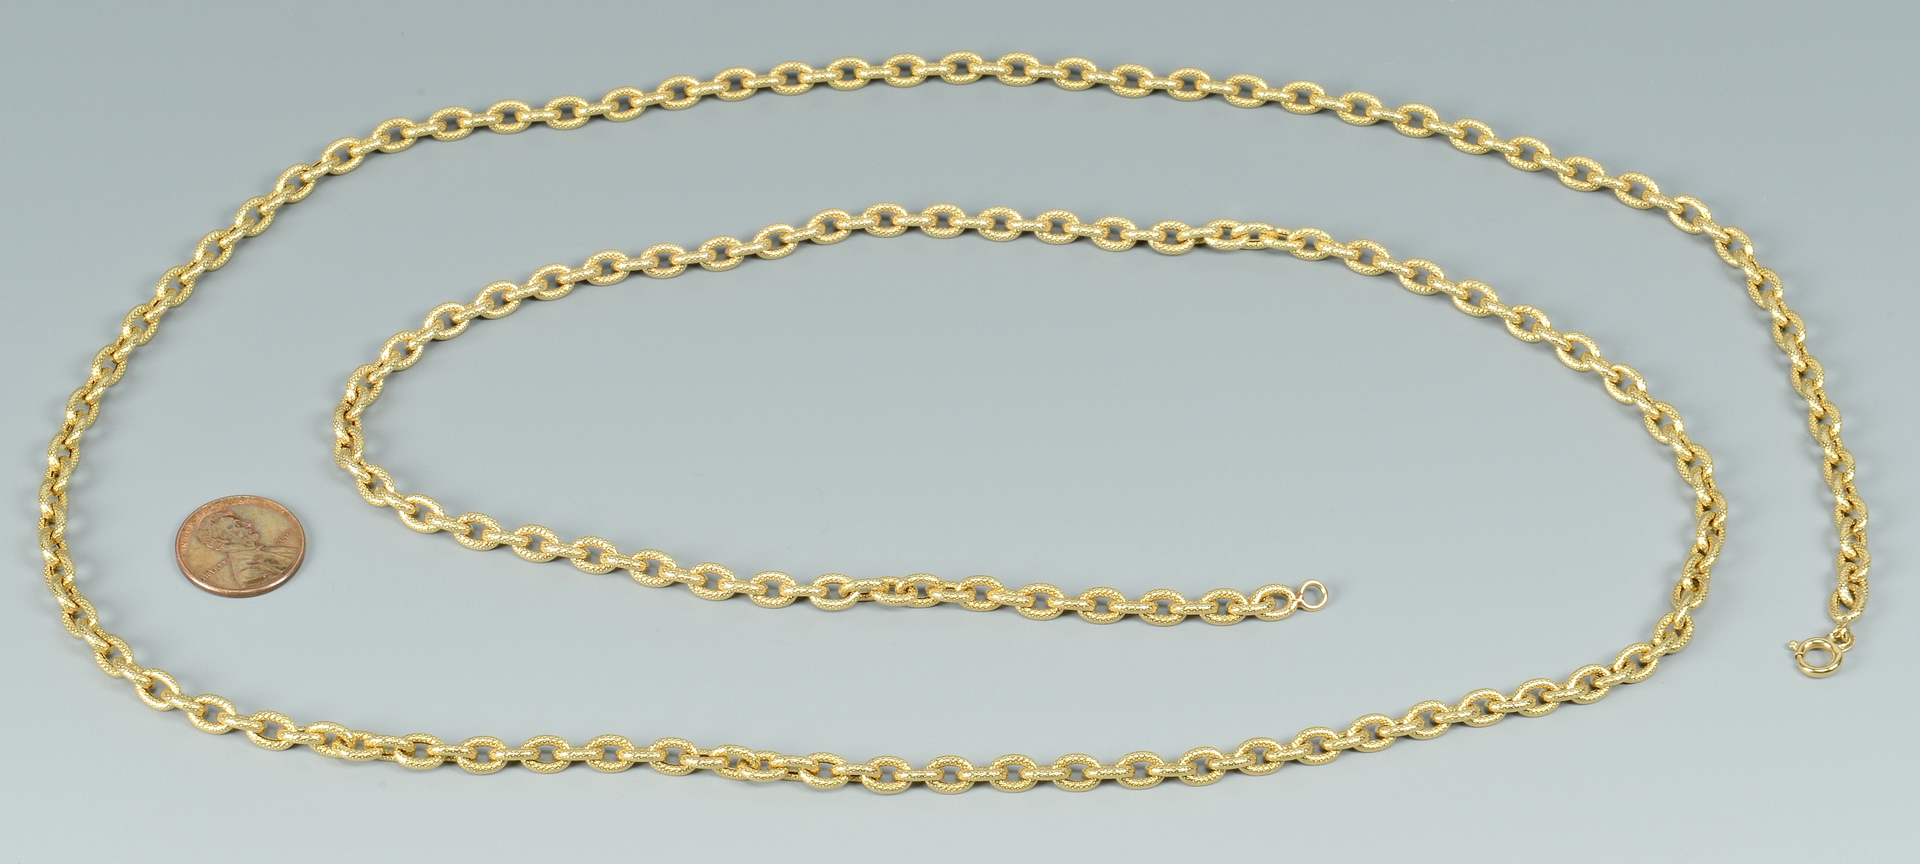 Lot 3088051: 18k Yellow Gold Necklace, 36.2 grams